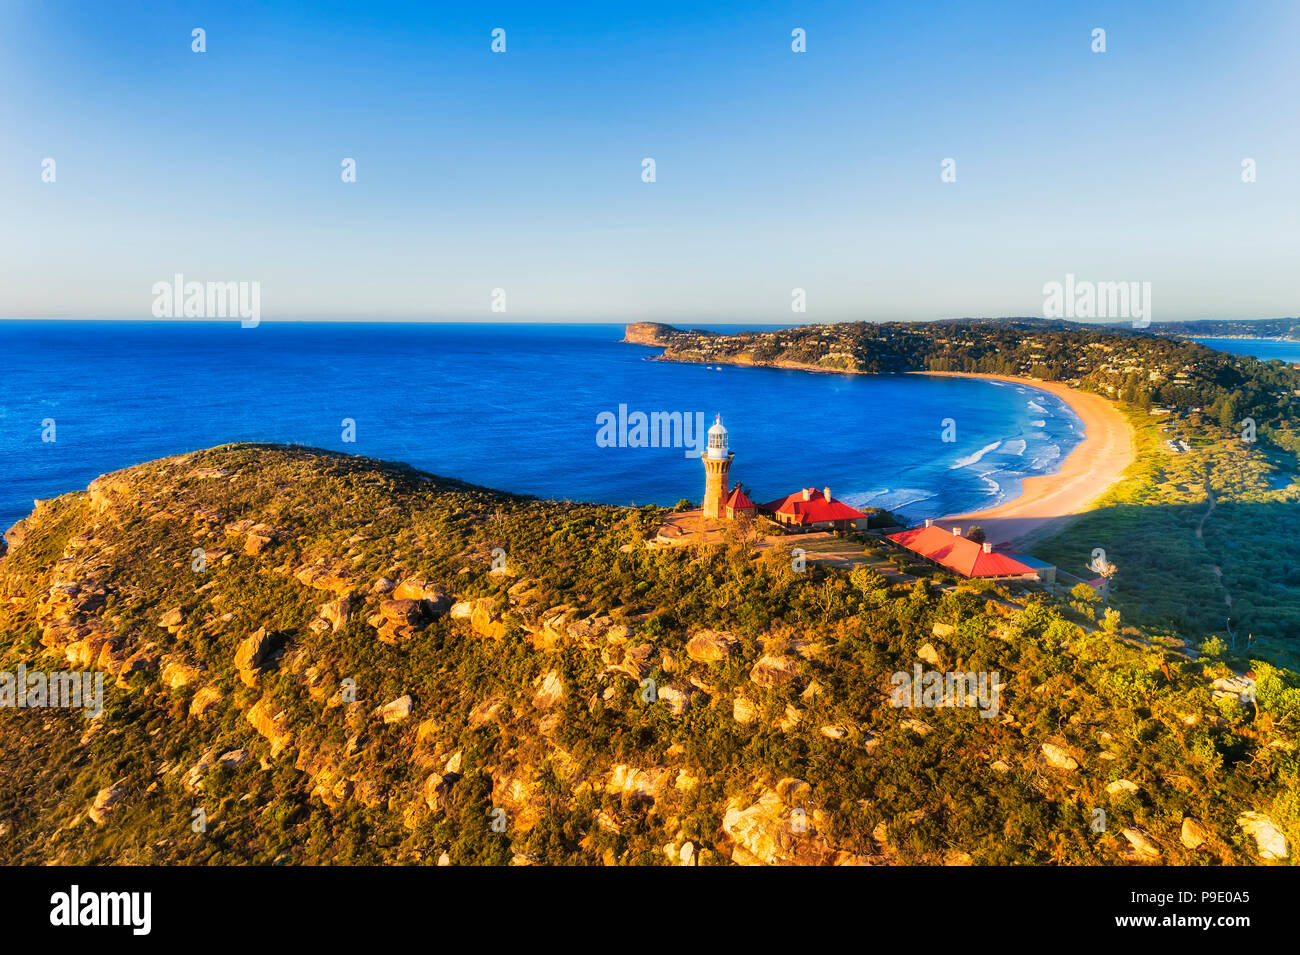 Barrenjoye head lighthouse high above Northern beaches coast of Sydney rising above Palm beach on a bright calm morning lit by warm sun light. - Stock Image